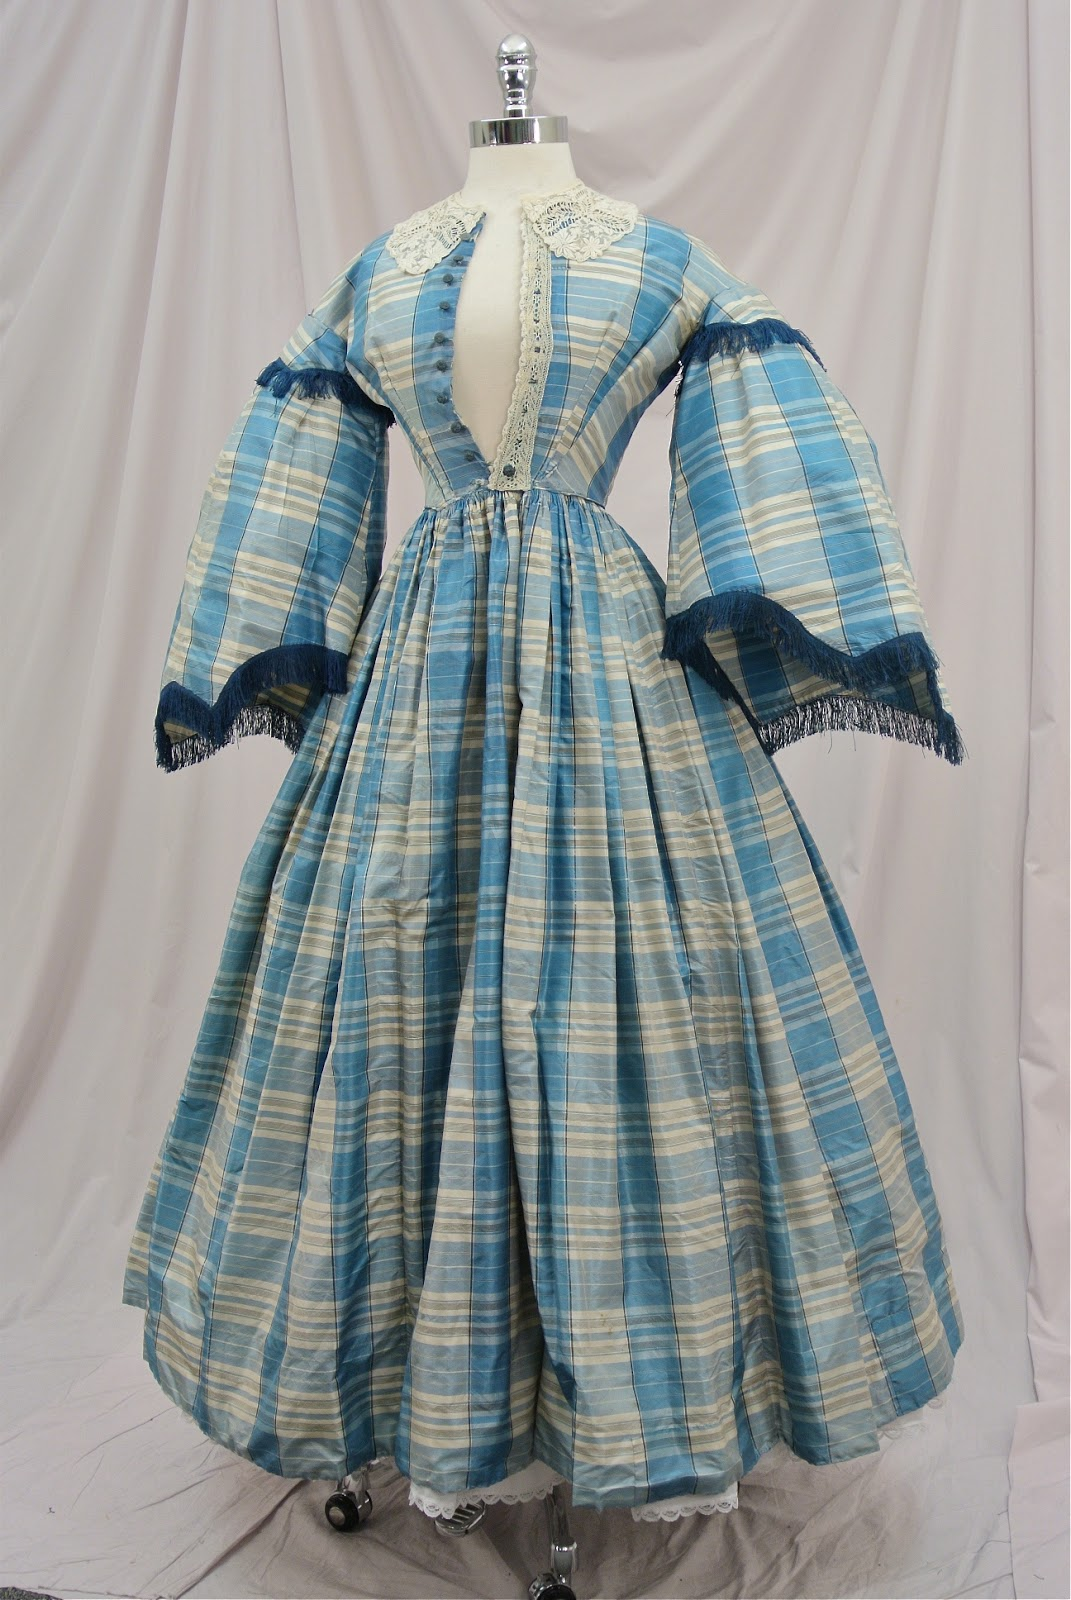 All The Pretty Dresses Mid 19th Century Victorian Plaid Dress redone in the early 1860s